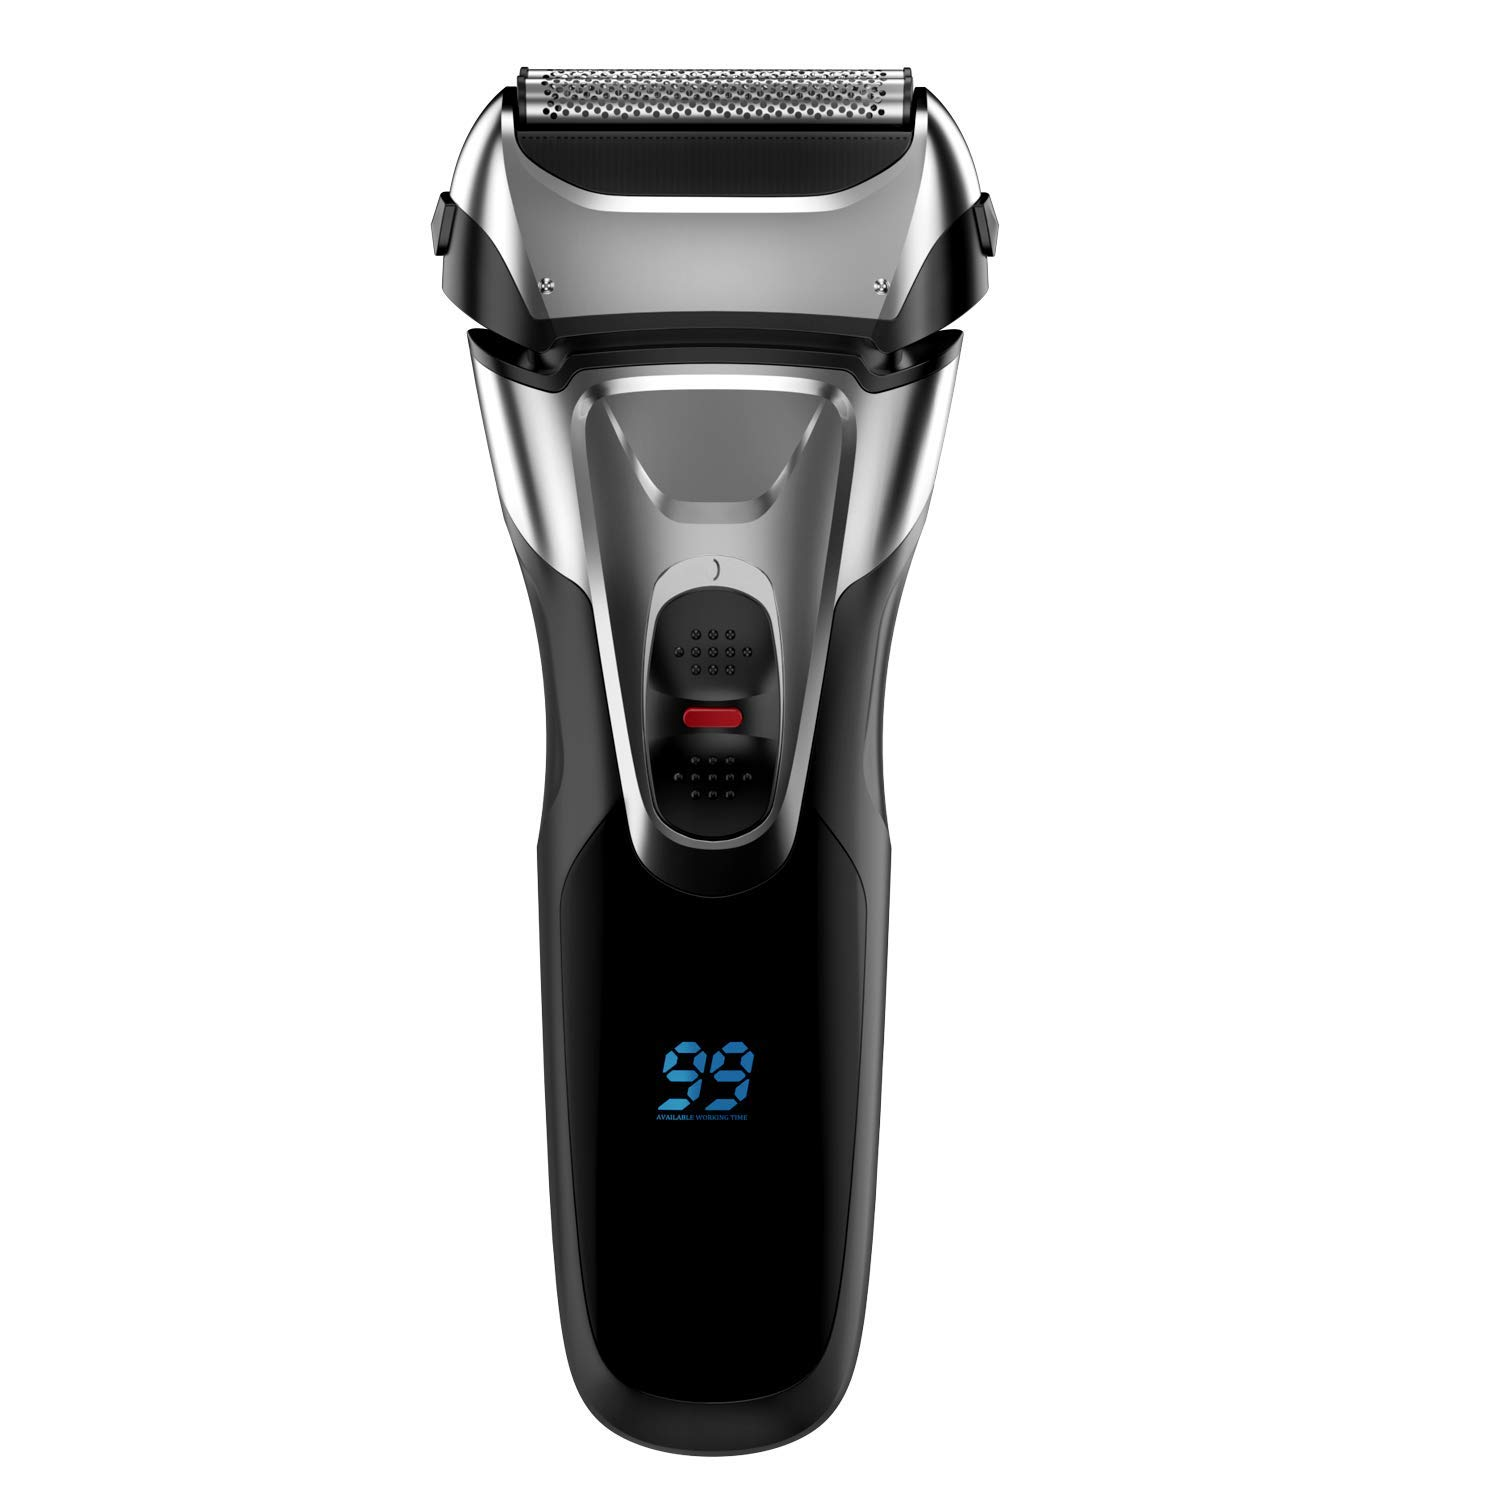 I really like this Foil Electric Shaver with Trimmer